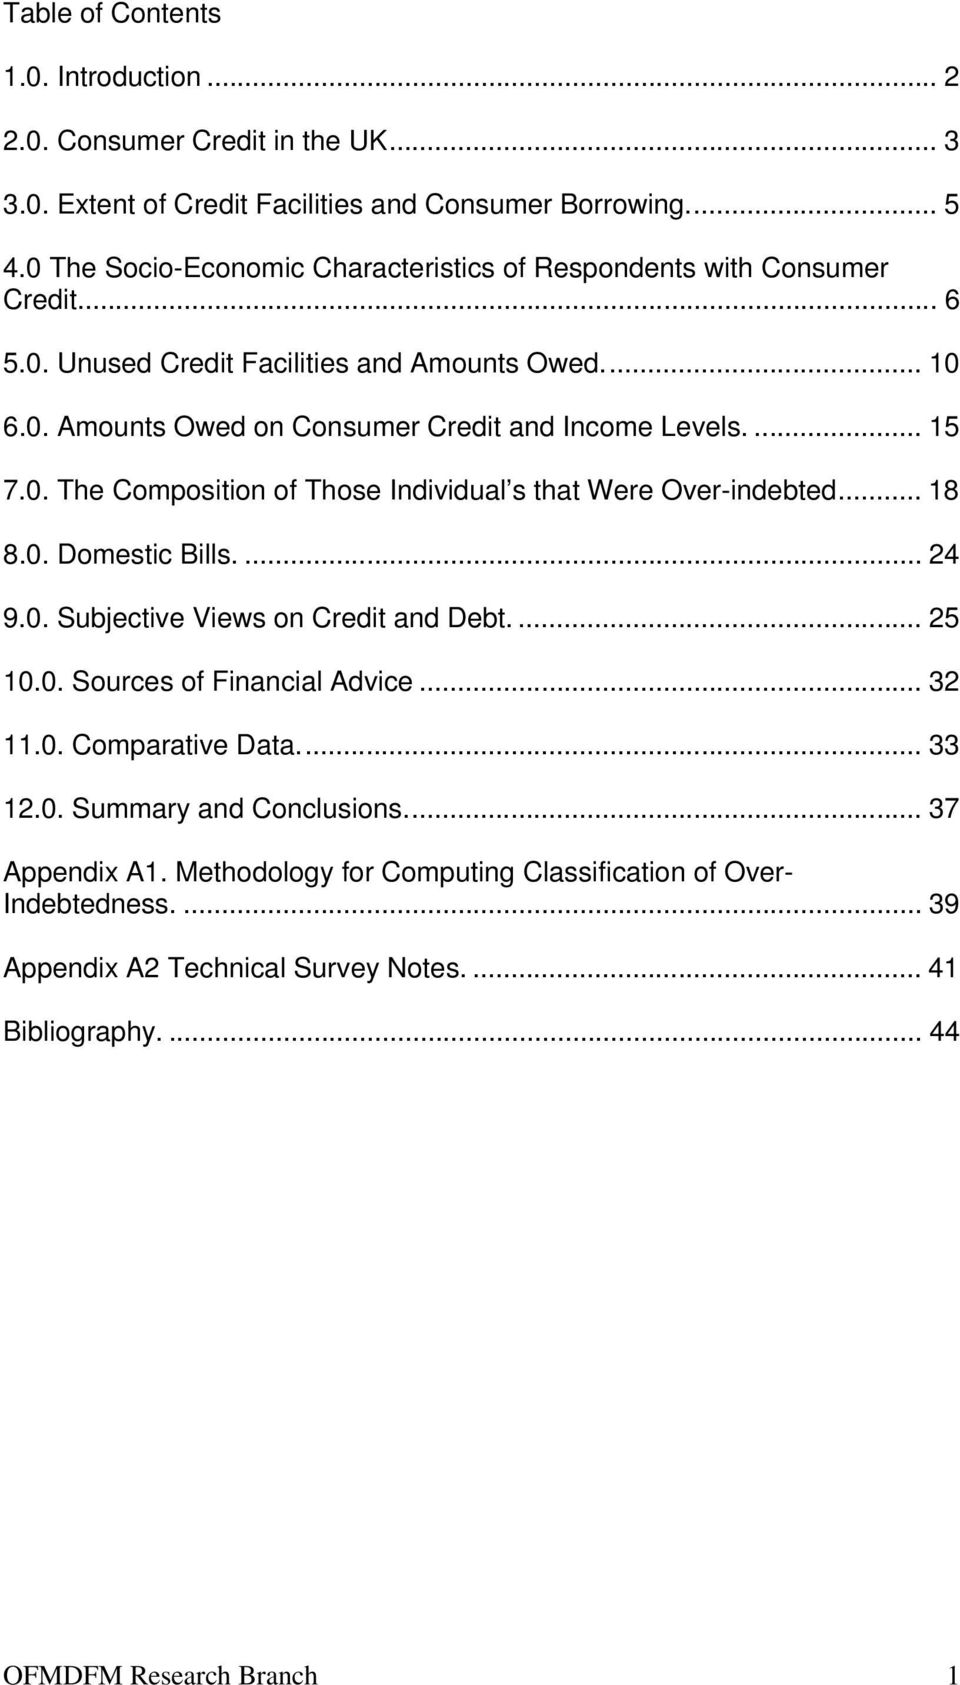 ... 15 7.0. The Composition of Those Individual s that Were Over-indebted... 18 8.0. Domestic Bills.... 24 9.0. Subjective Views on Credit and Debt.... 25 10.0. Sources of Financial Advice.